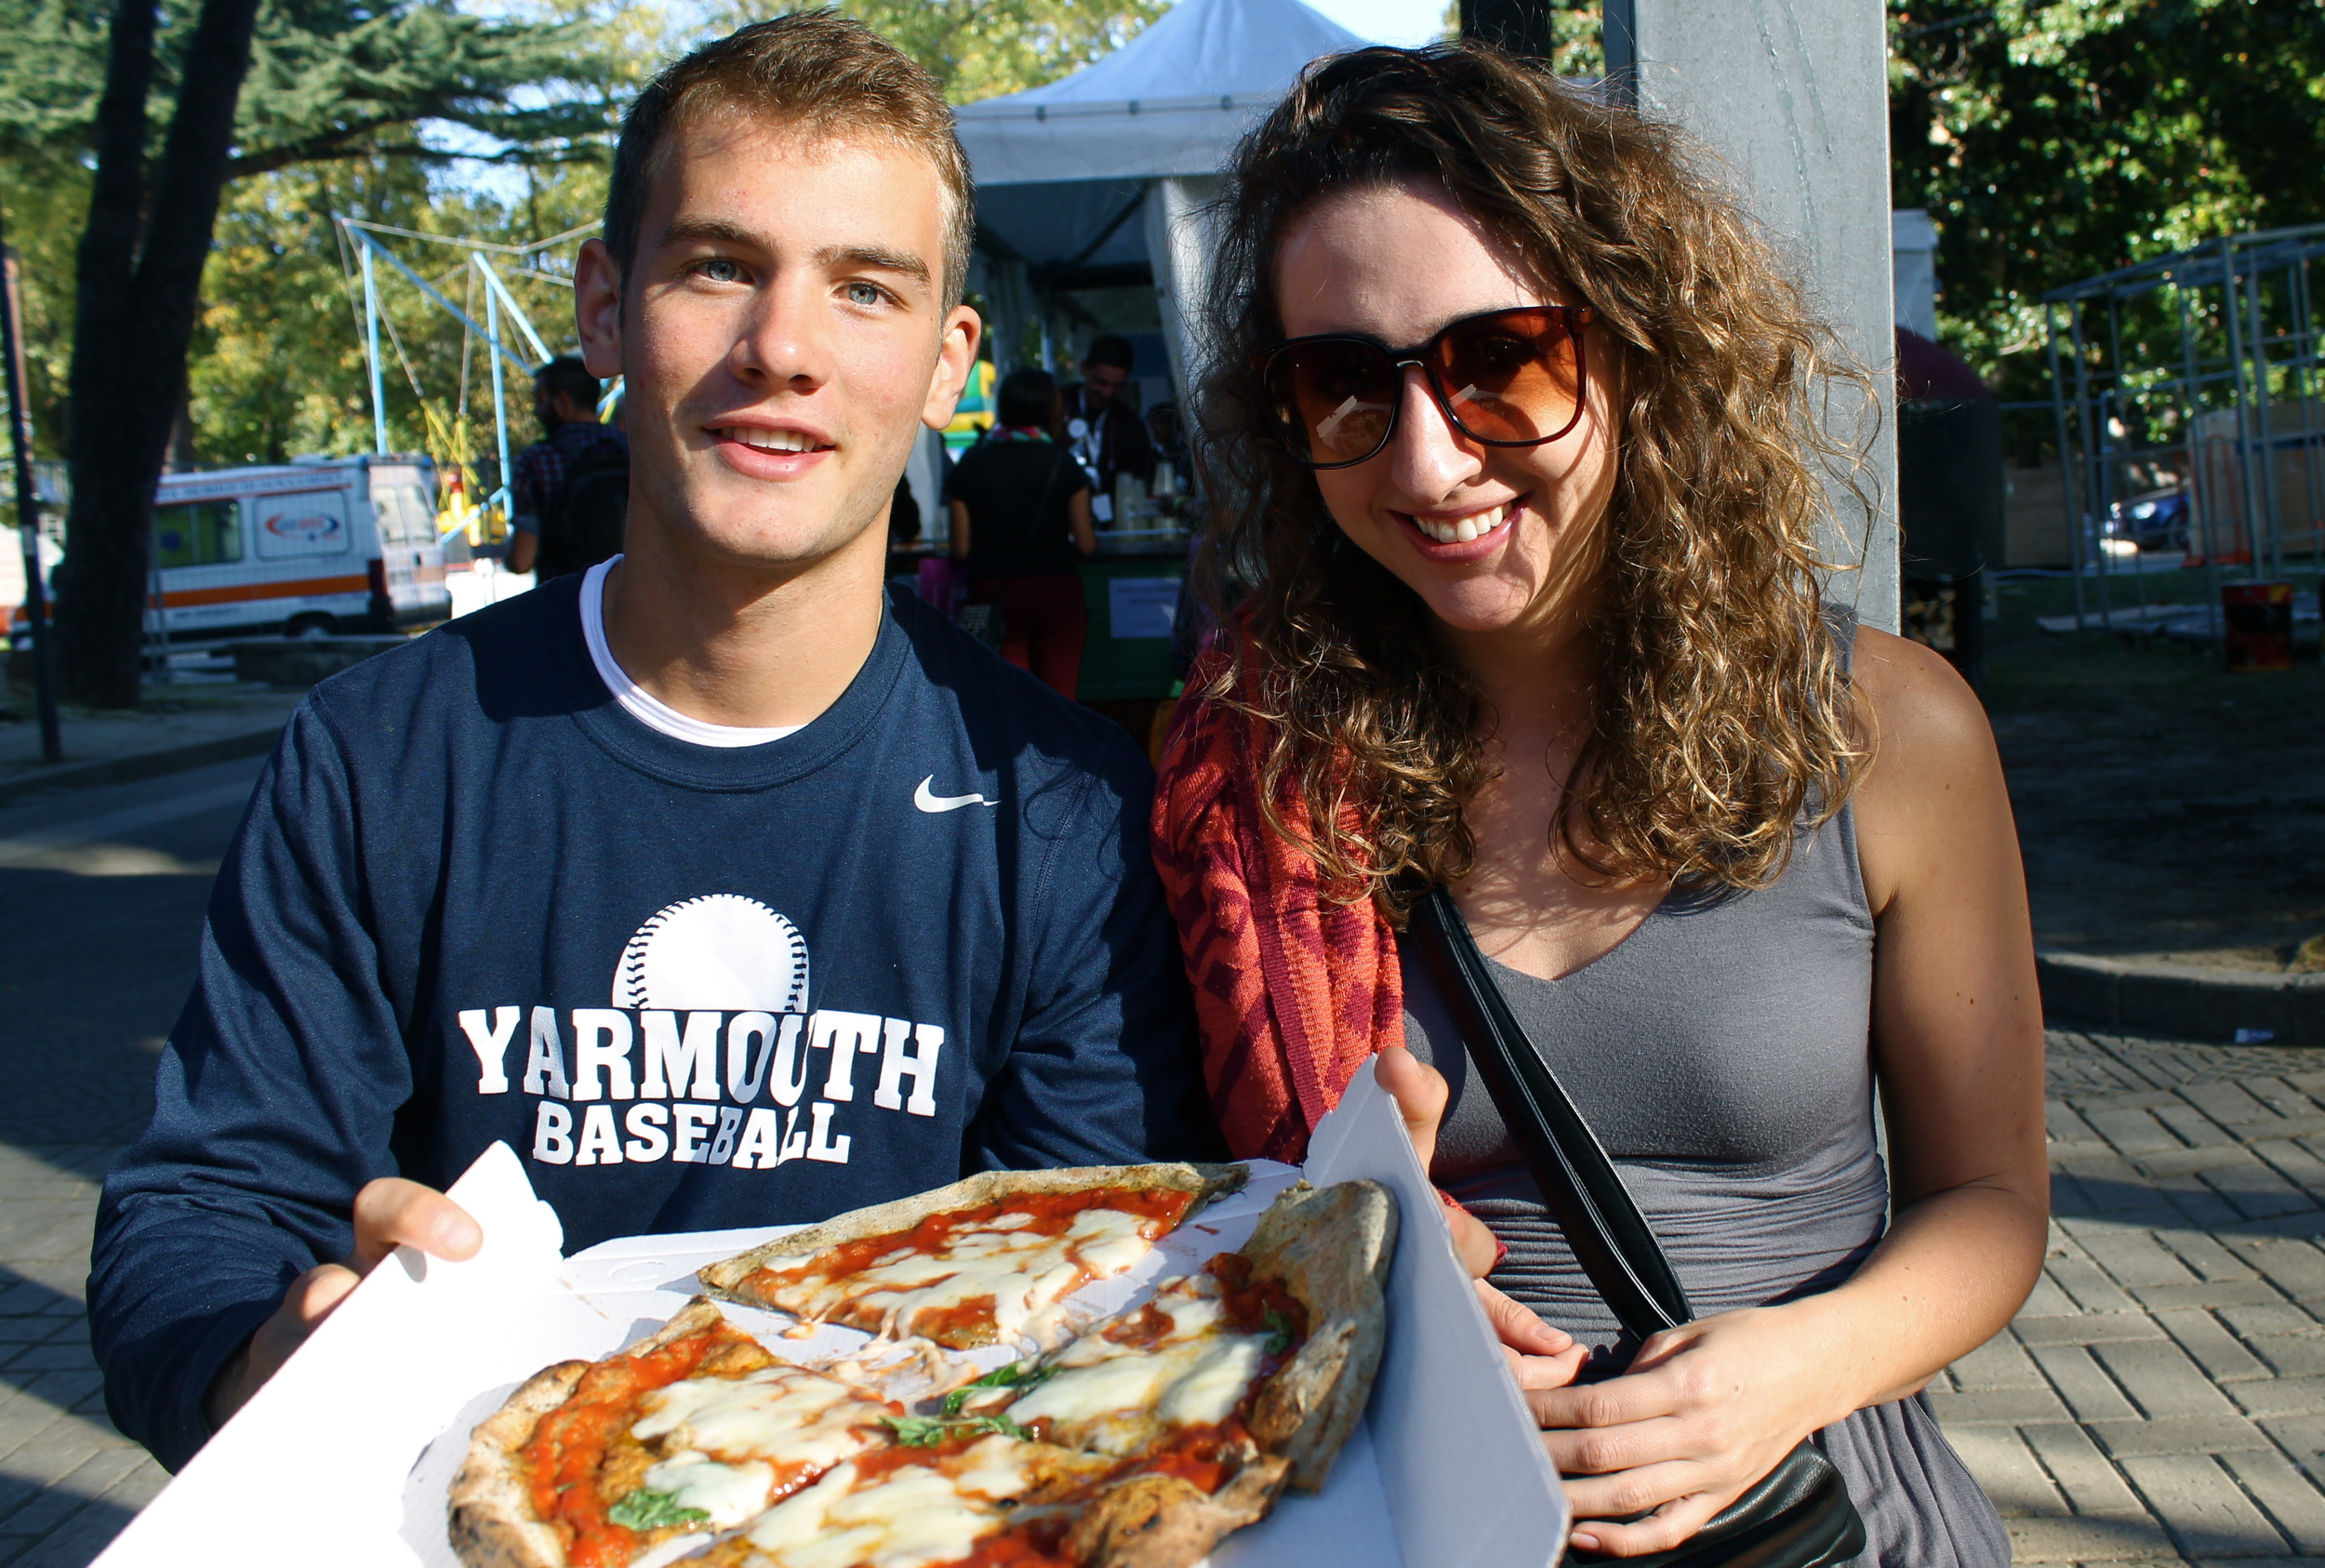 Kris and I attended a HempFest and got hemp pizza. (Only effect was that it was crunchier)